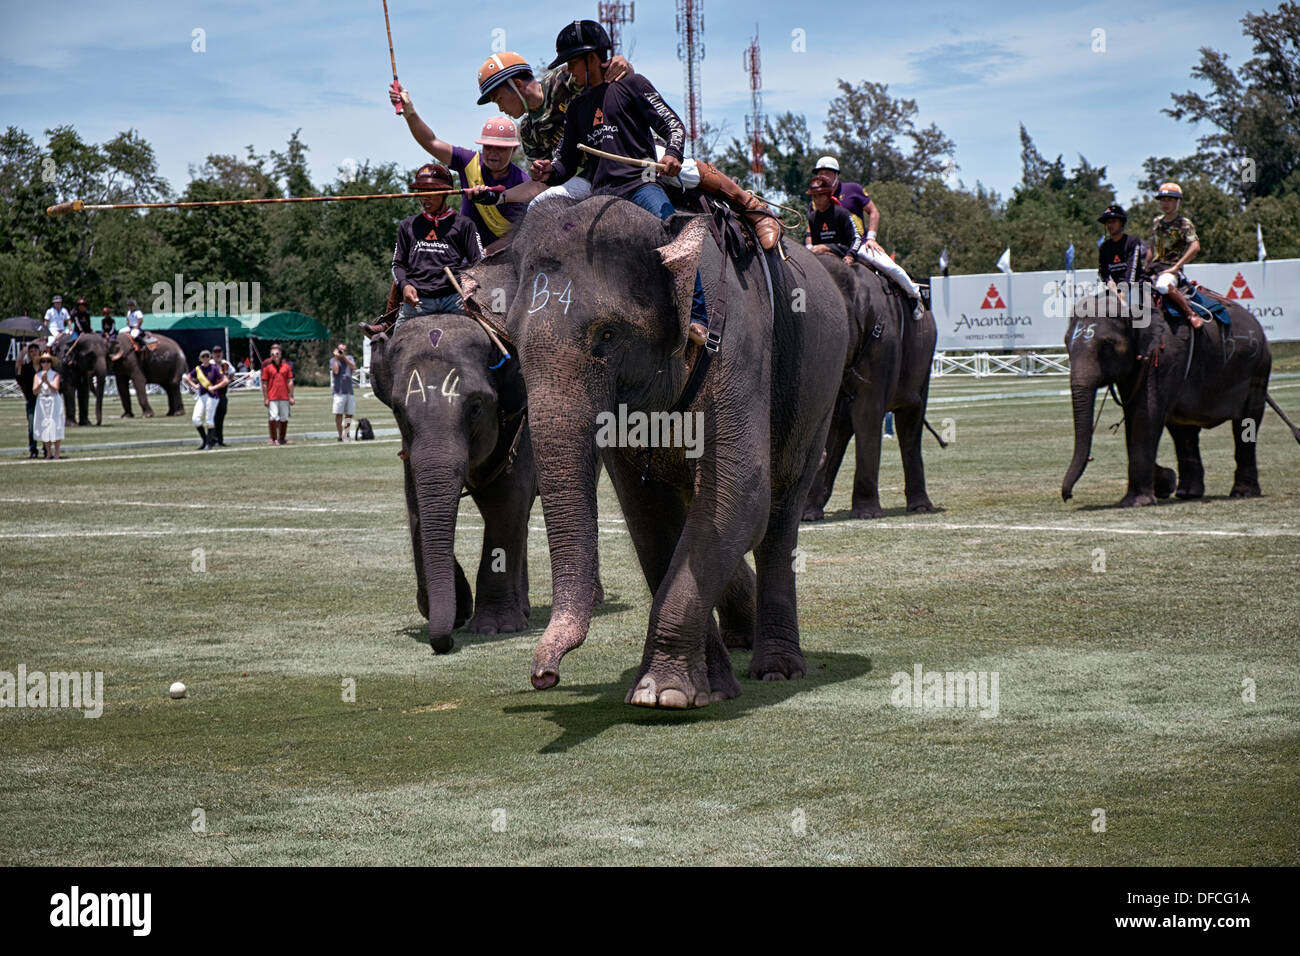 Elephant polo match action. 2013 Kings Cup Hua Hin Thailand S. E. Asia - Stock Image